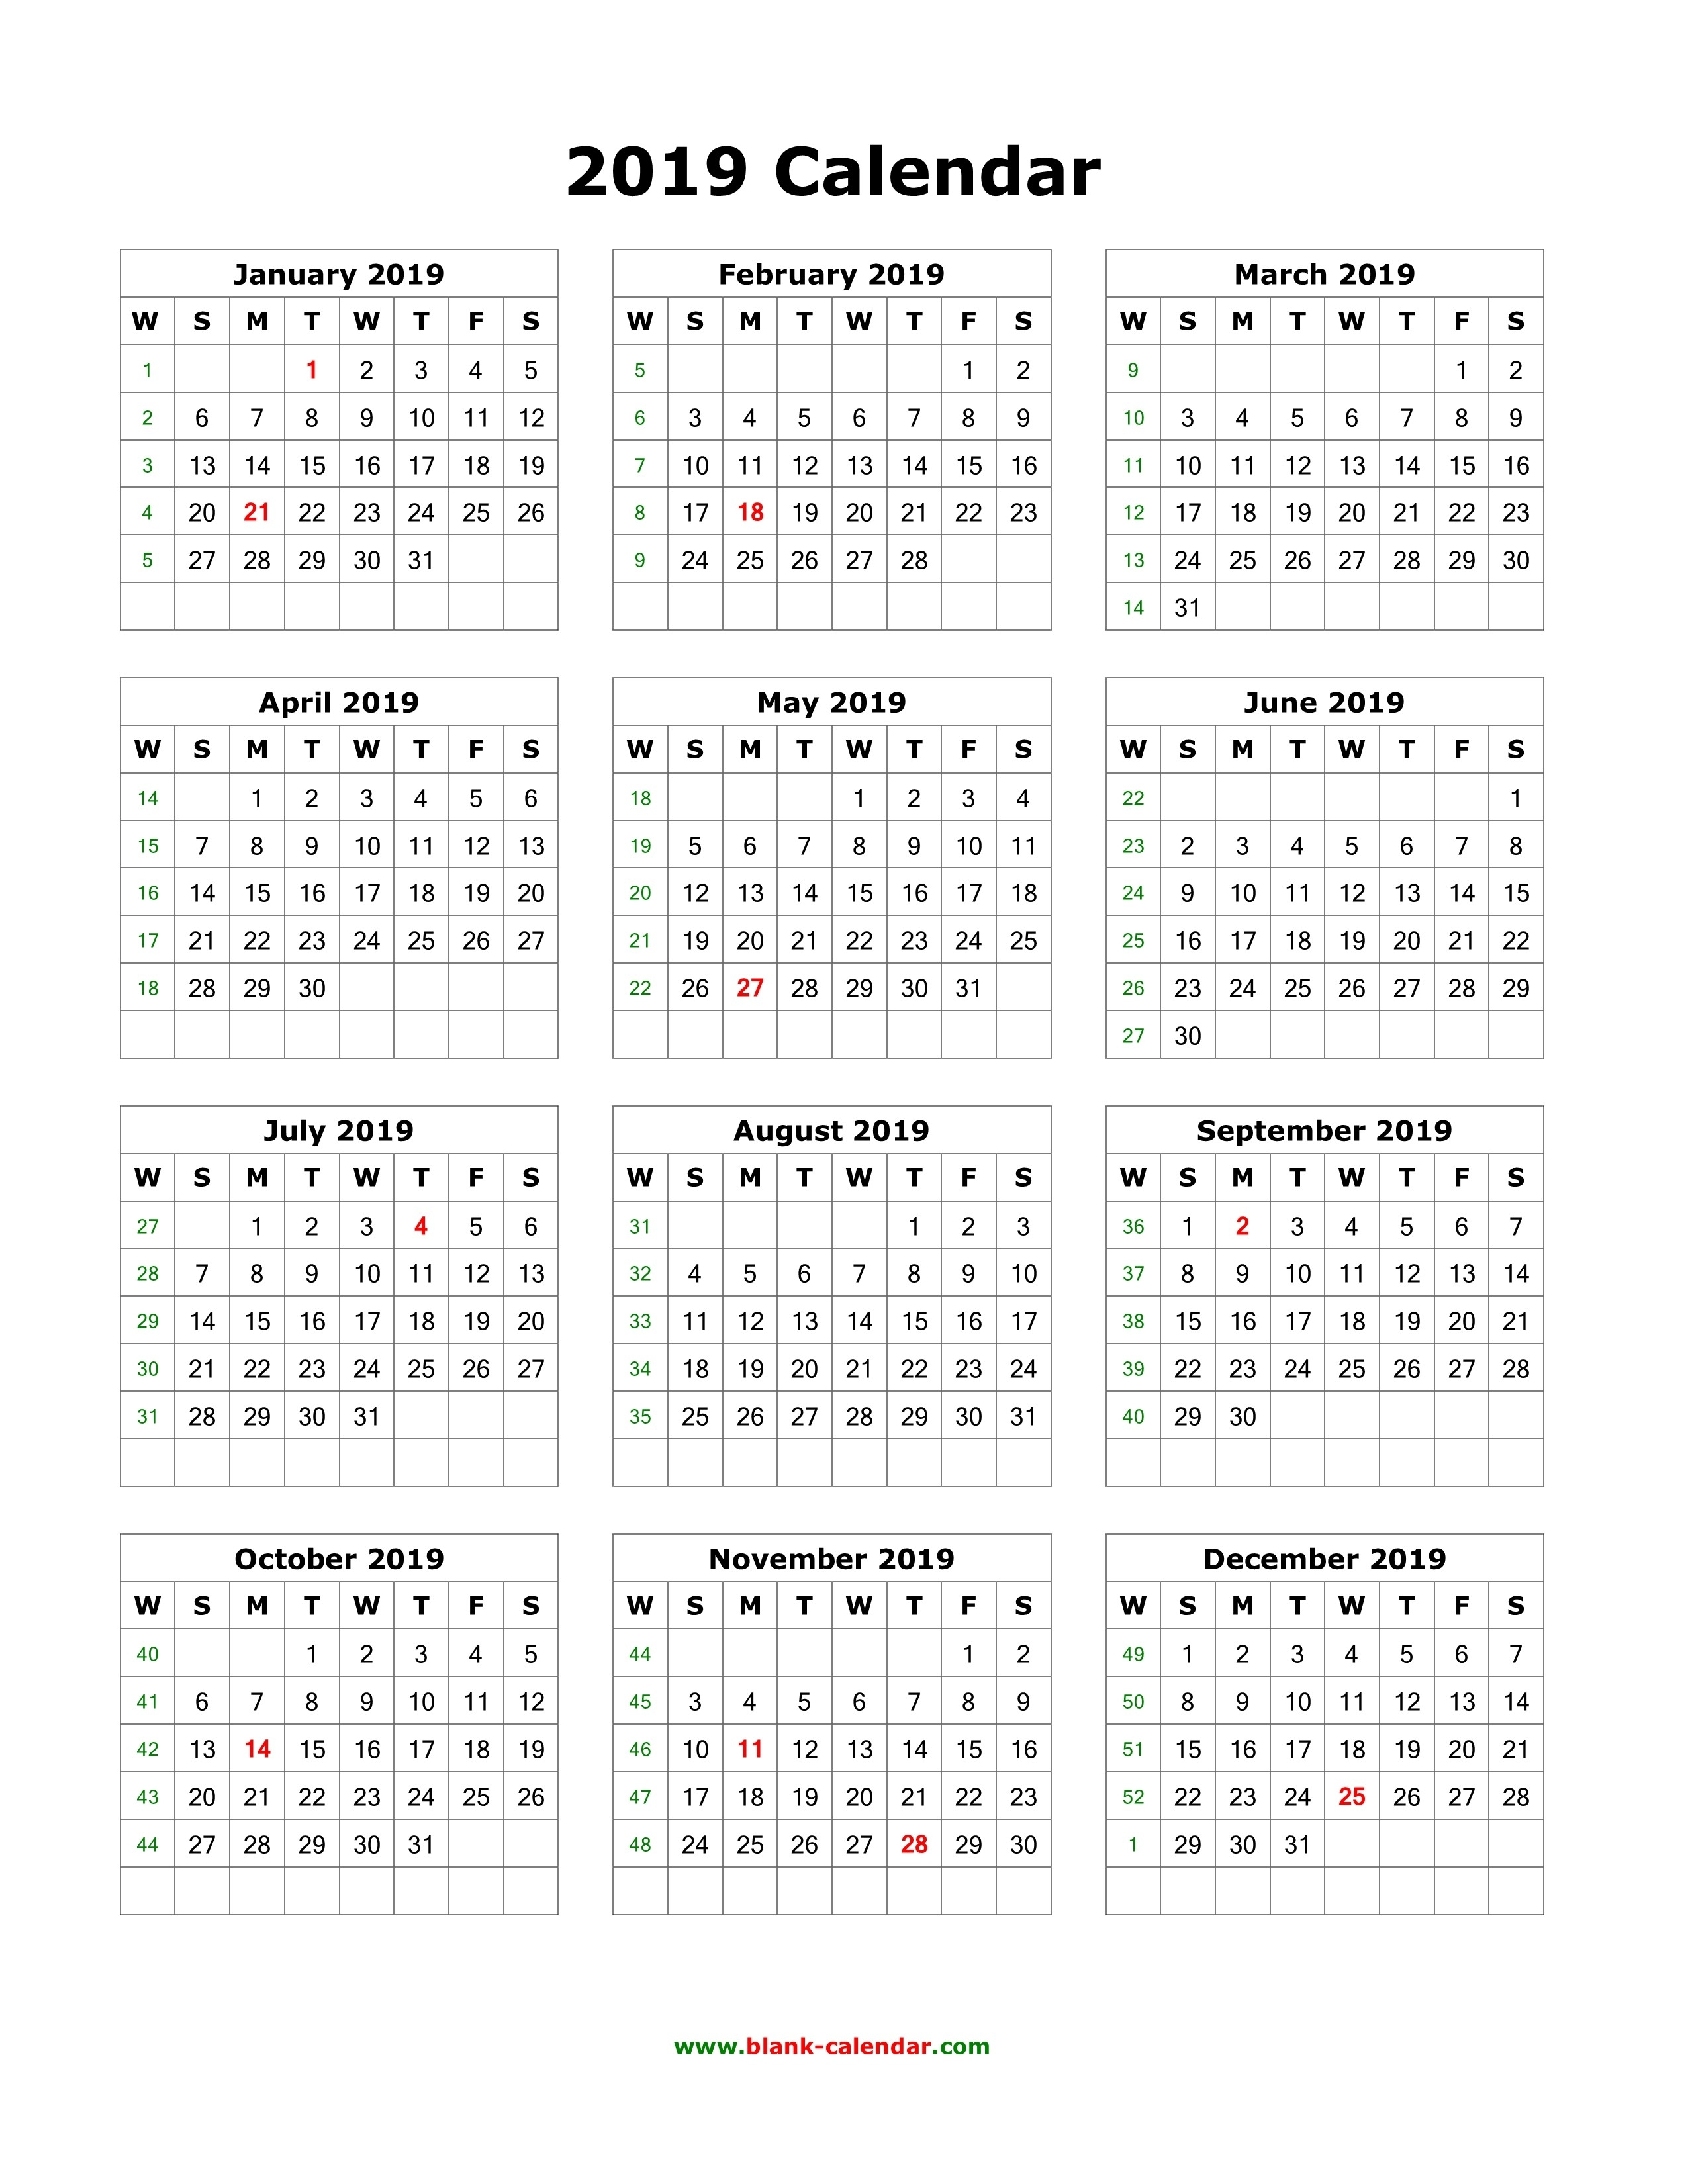 Download Blank Calendar 2019 (12 Months On One Page, Vertical)-Blank Calendar 4 Months One Page